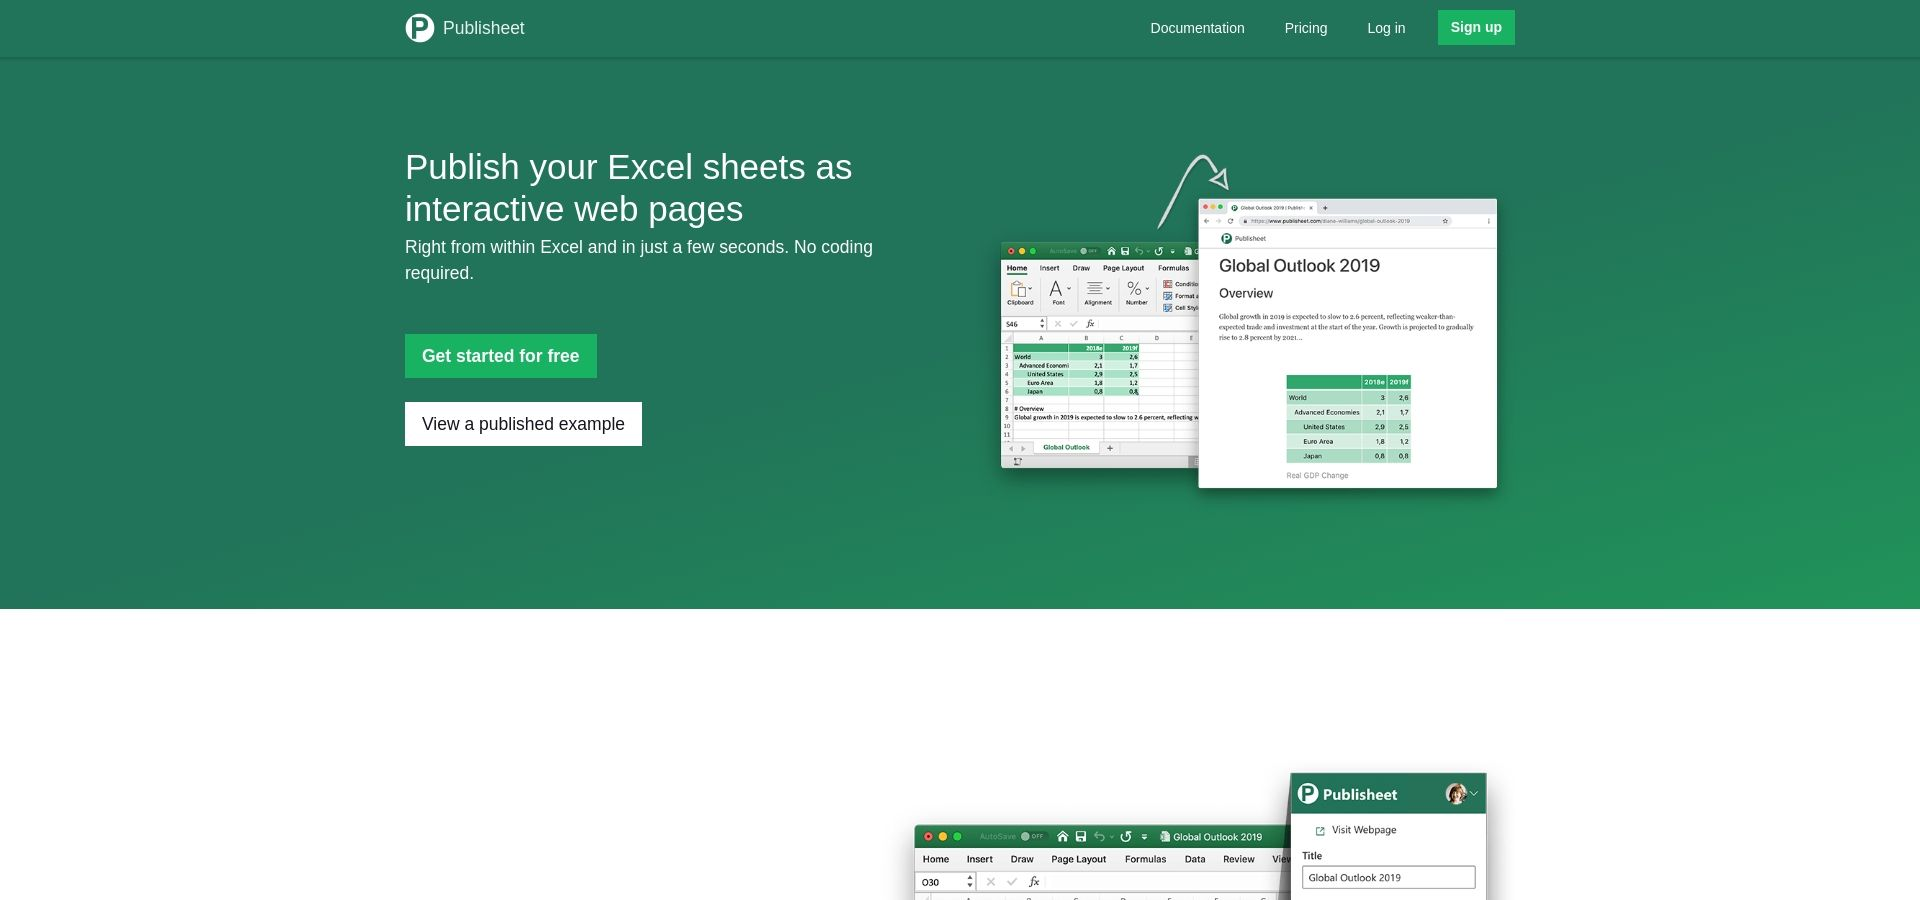 Publisheet - Convert spreadsheets to web pages with formula support, right from within Excel. No coding required.